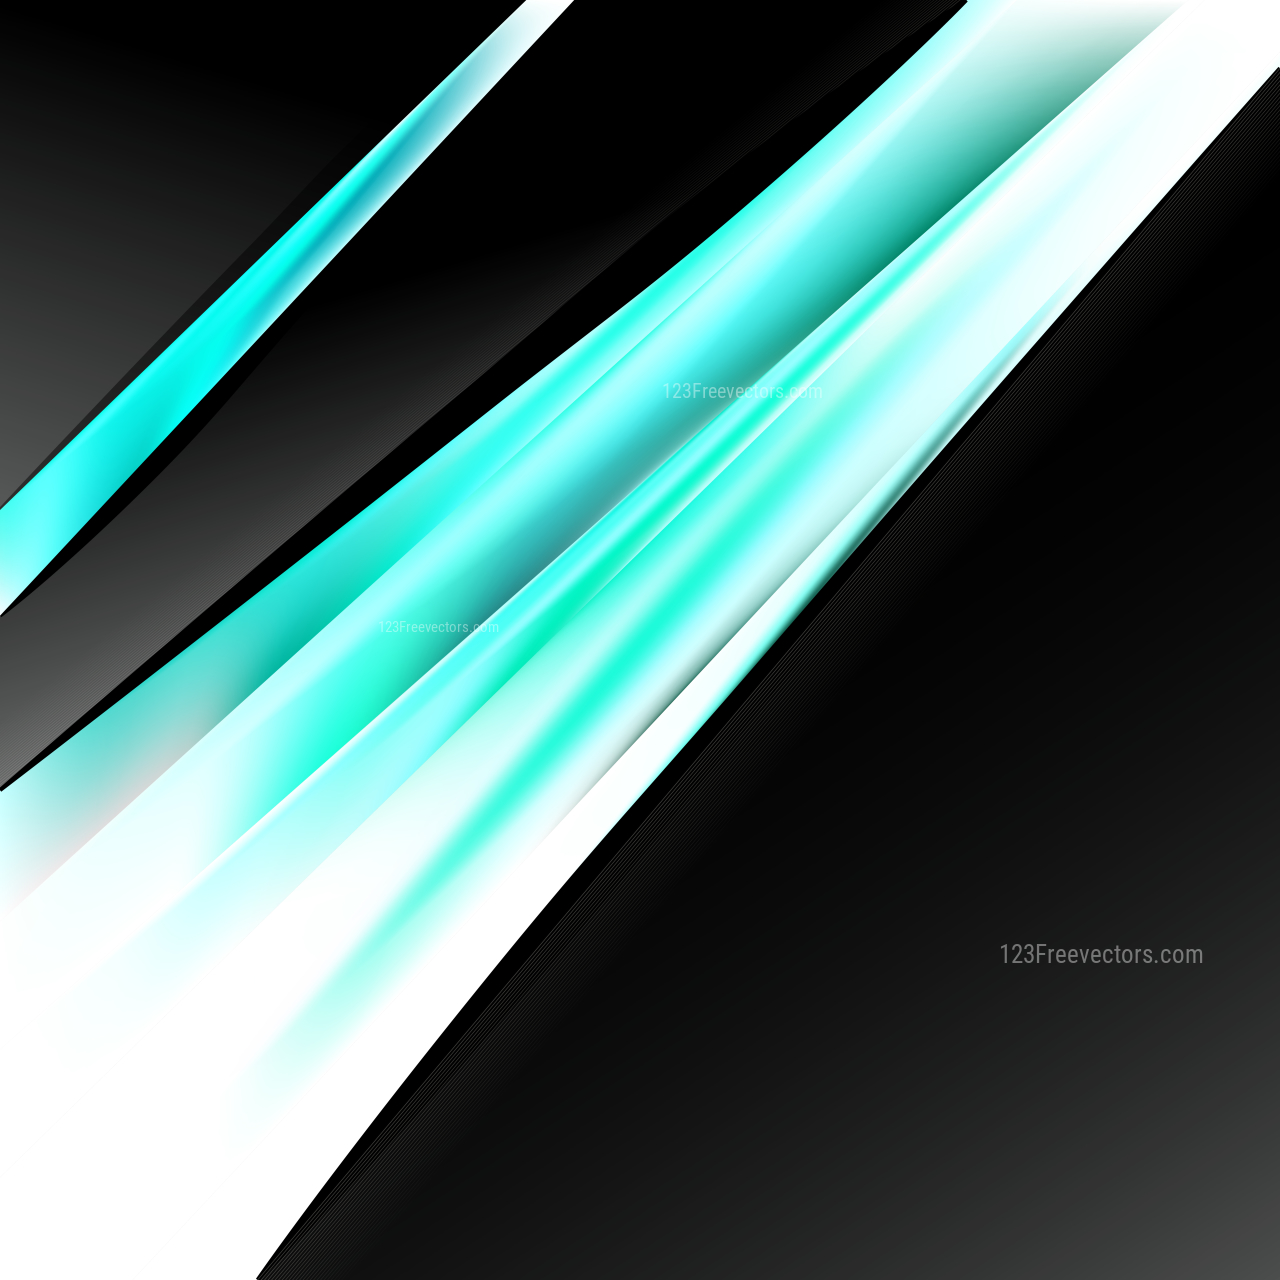 Turquoise Black and White Business Background